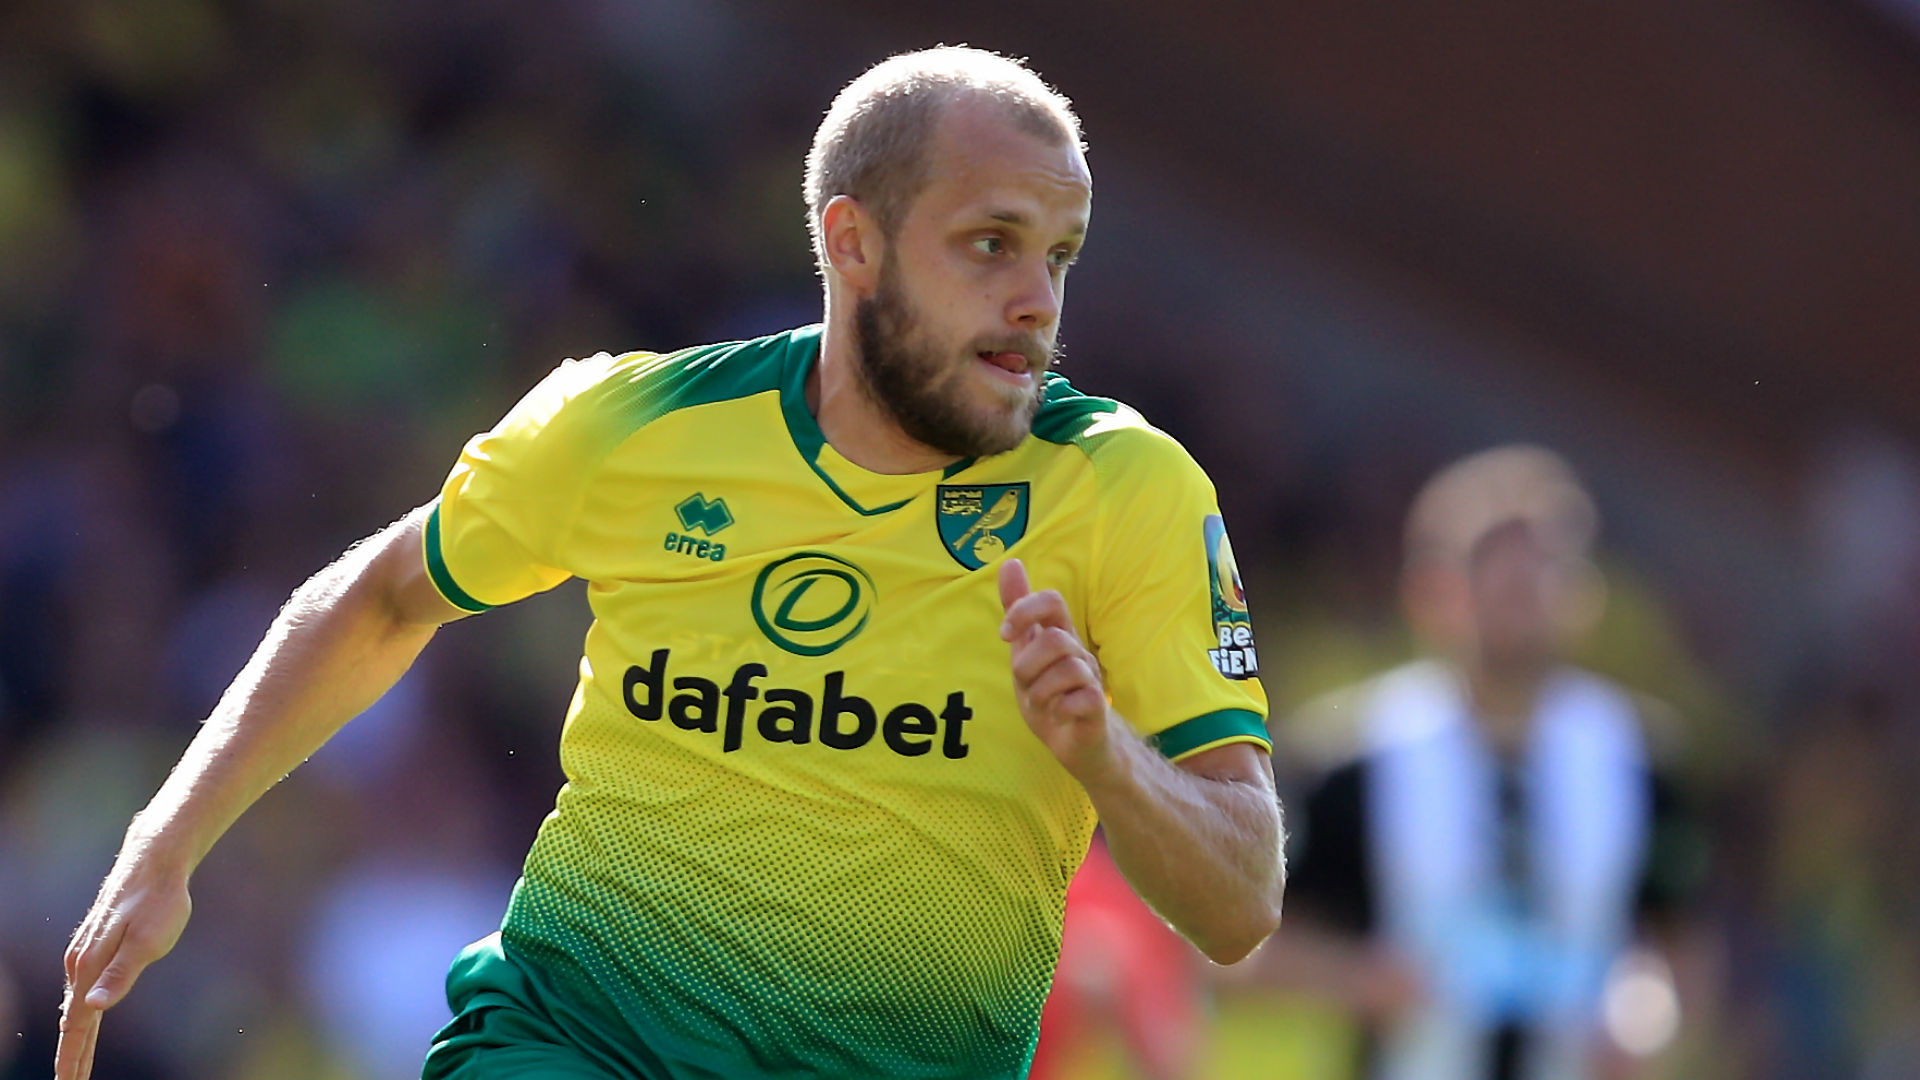 Pukki scored a hattrick against Newcastle on Saturday. (PHOTO/Courtesy)